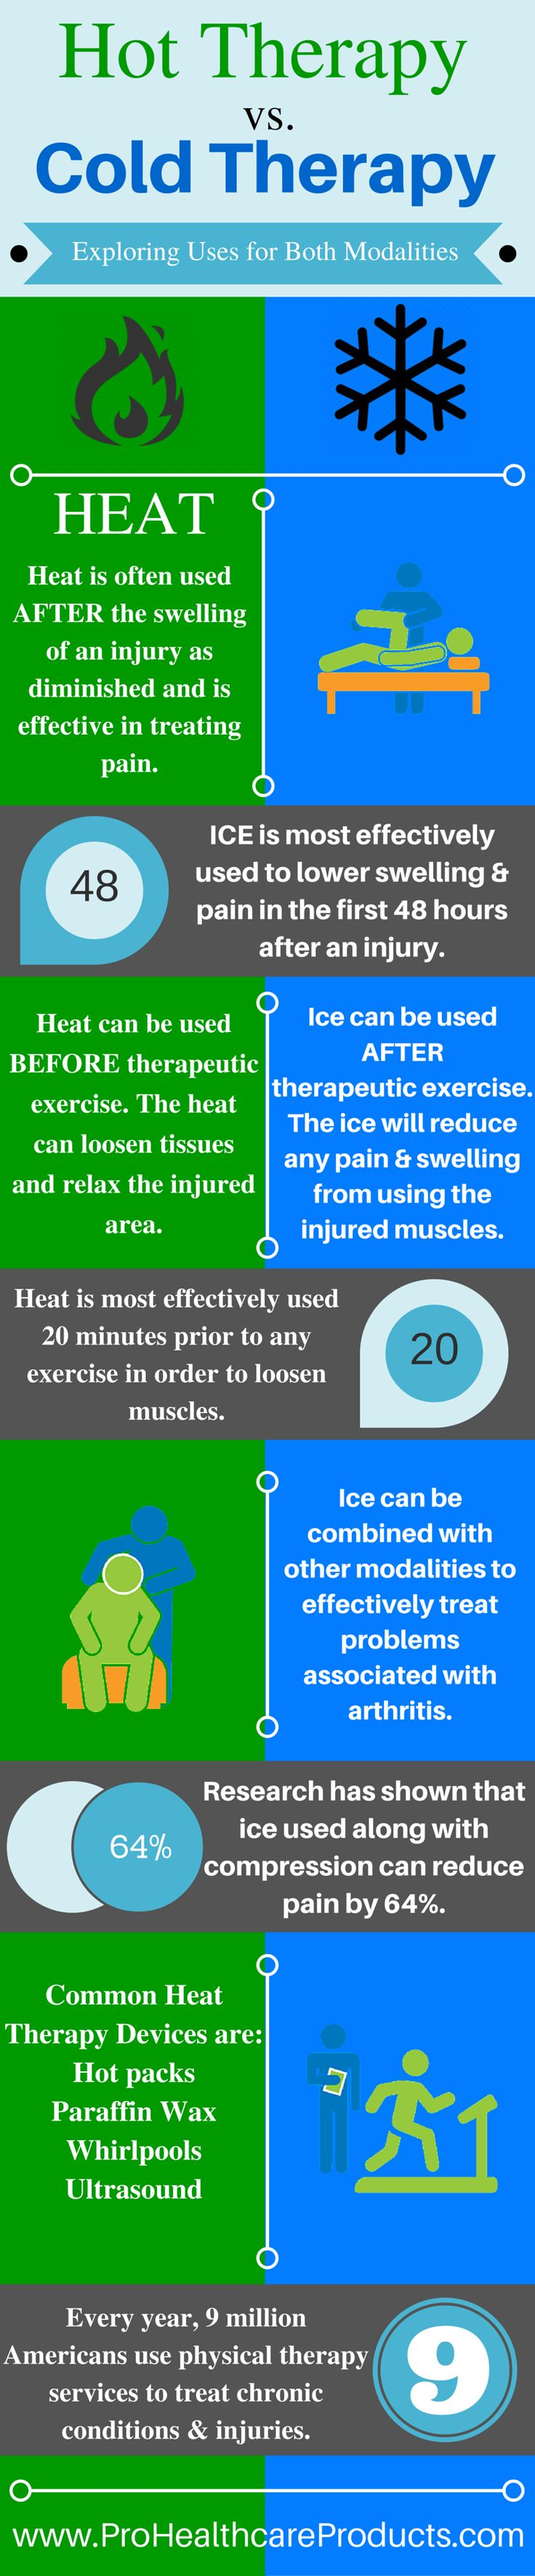 Infographic showing the differences in Hot & Cold Therapy and the popular modalities clinicians use to apply either treatment.